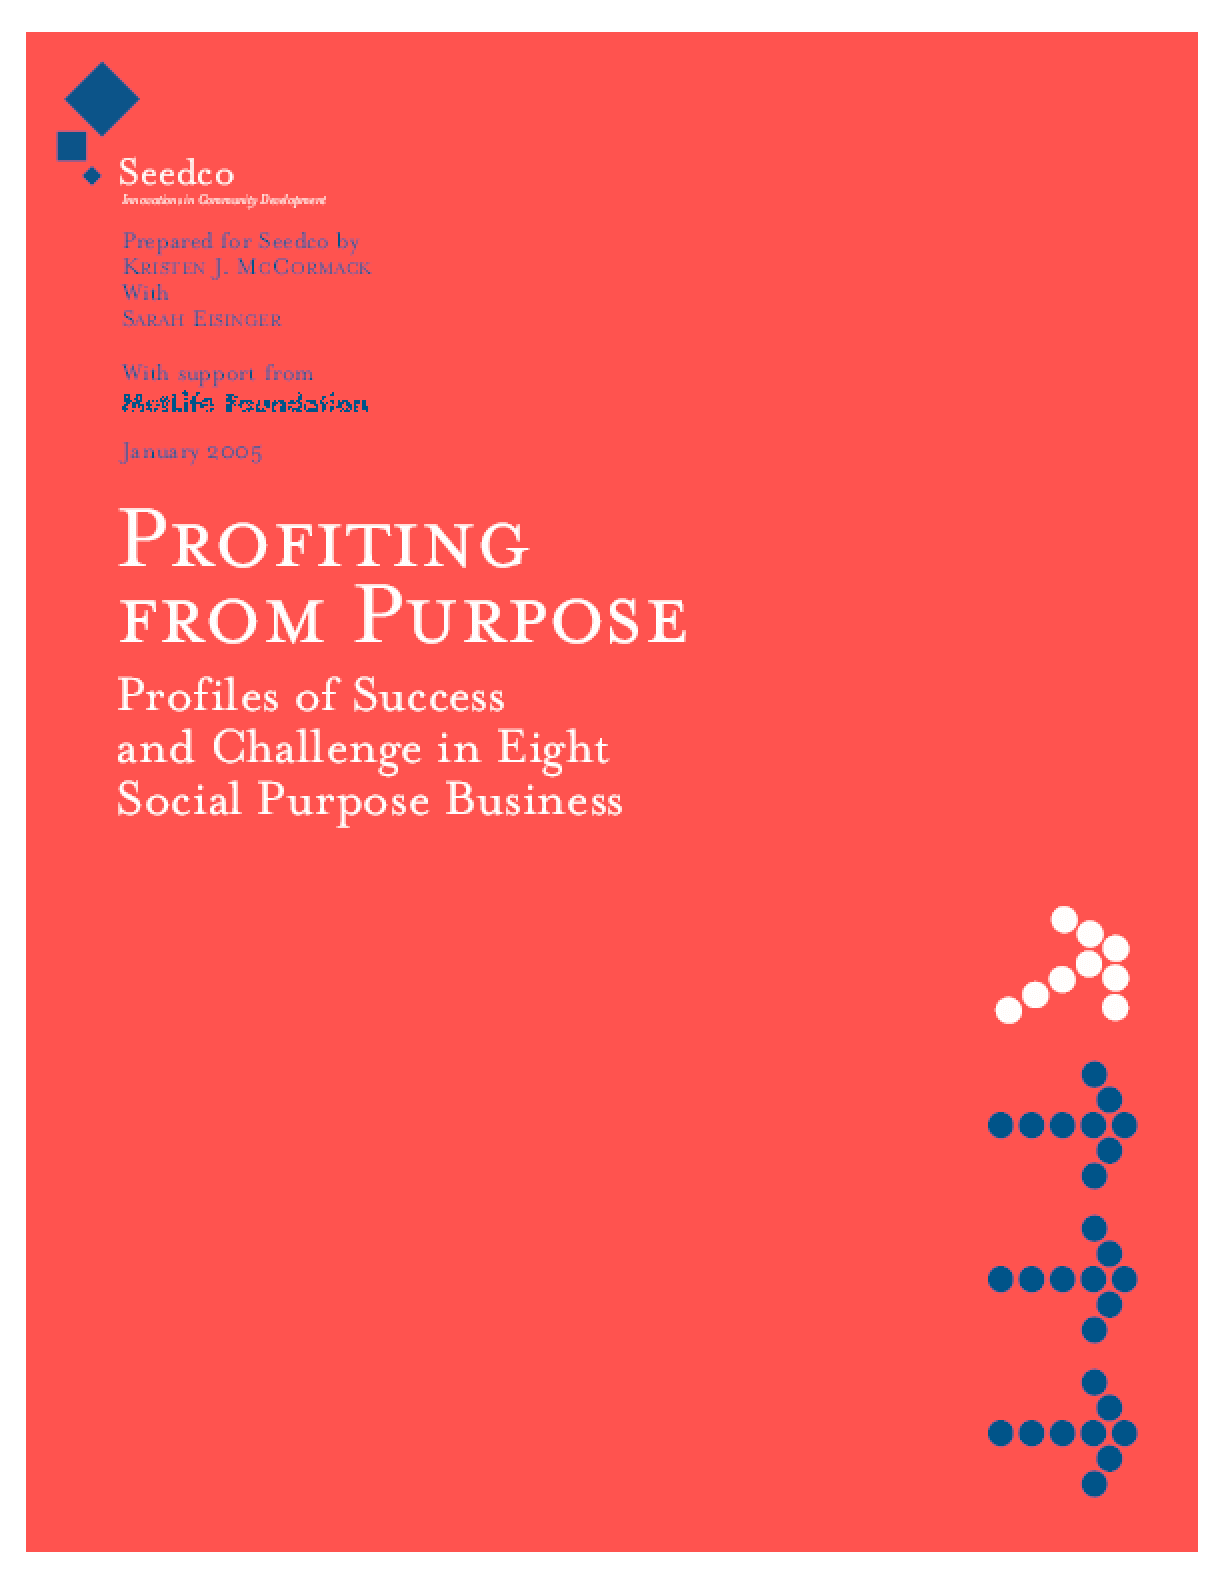 Profiting From Purpose: Profiles of Success and Challenge in Eight Social Purpose Businesses